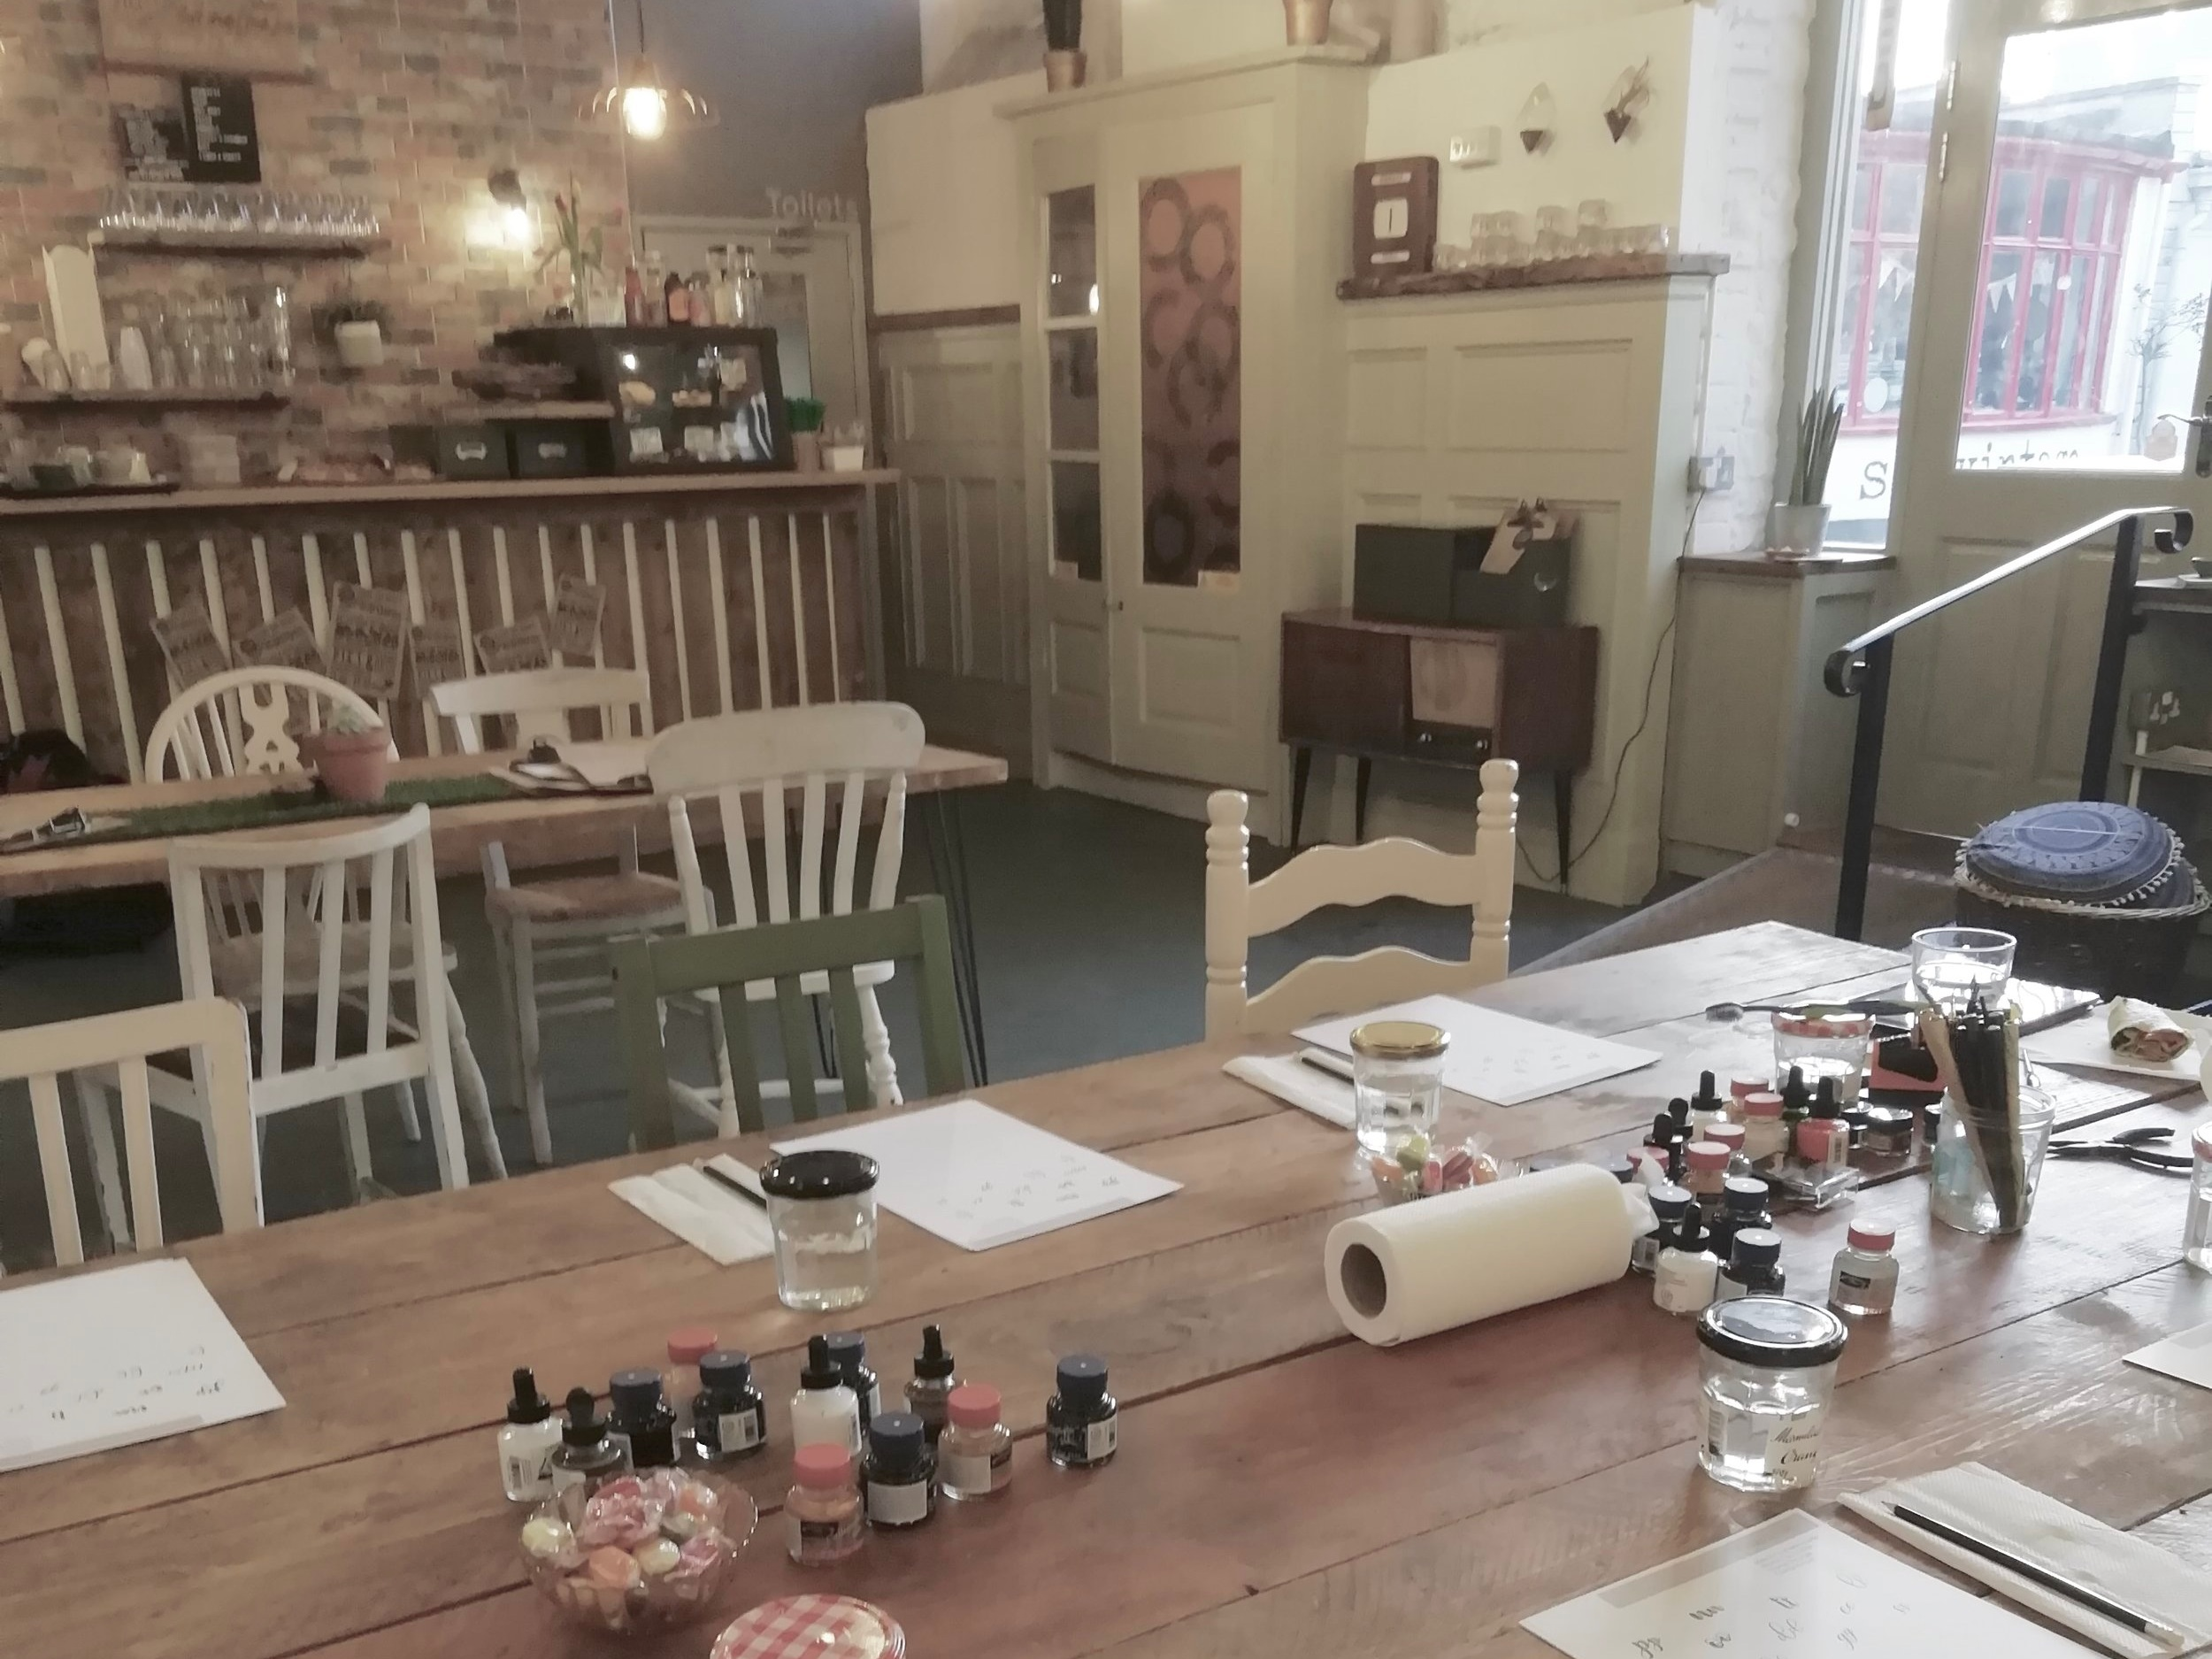 Modern calligraphy classes for beginners at Loaf Bakehouse in Wells, Somerset